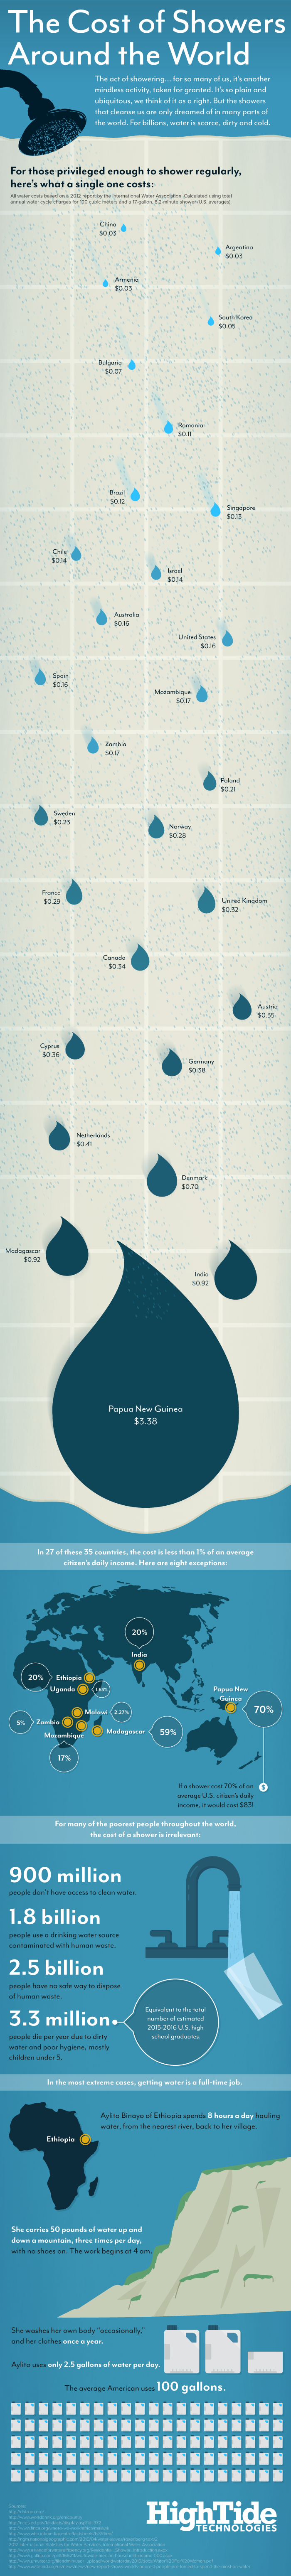 The Cost of Showers Around the World Infographic - High Tide Technologies